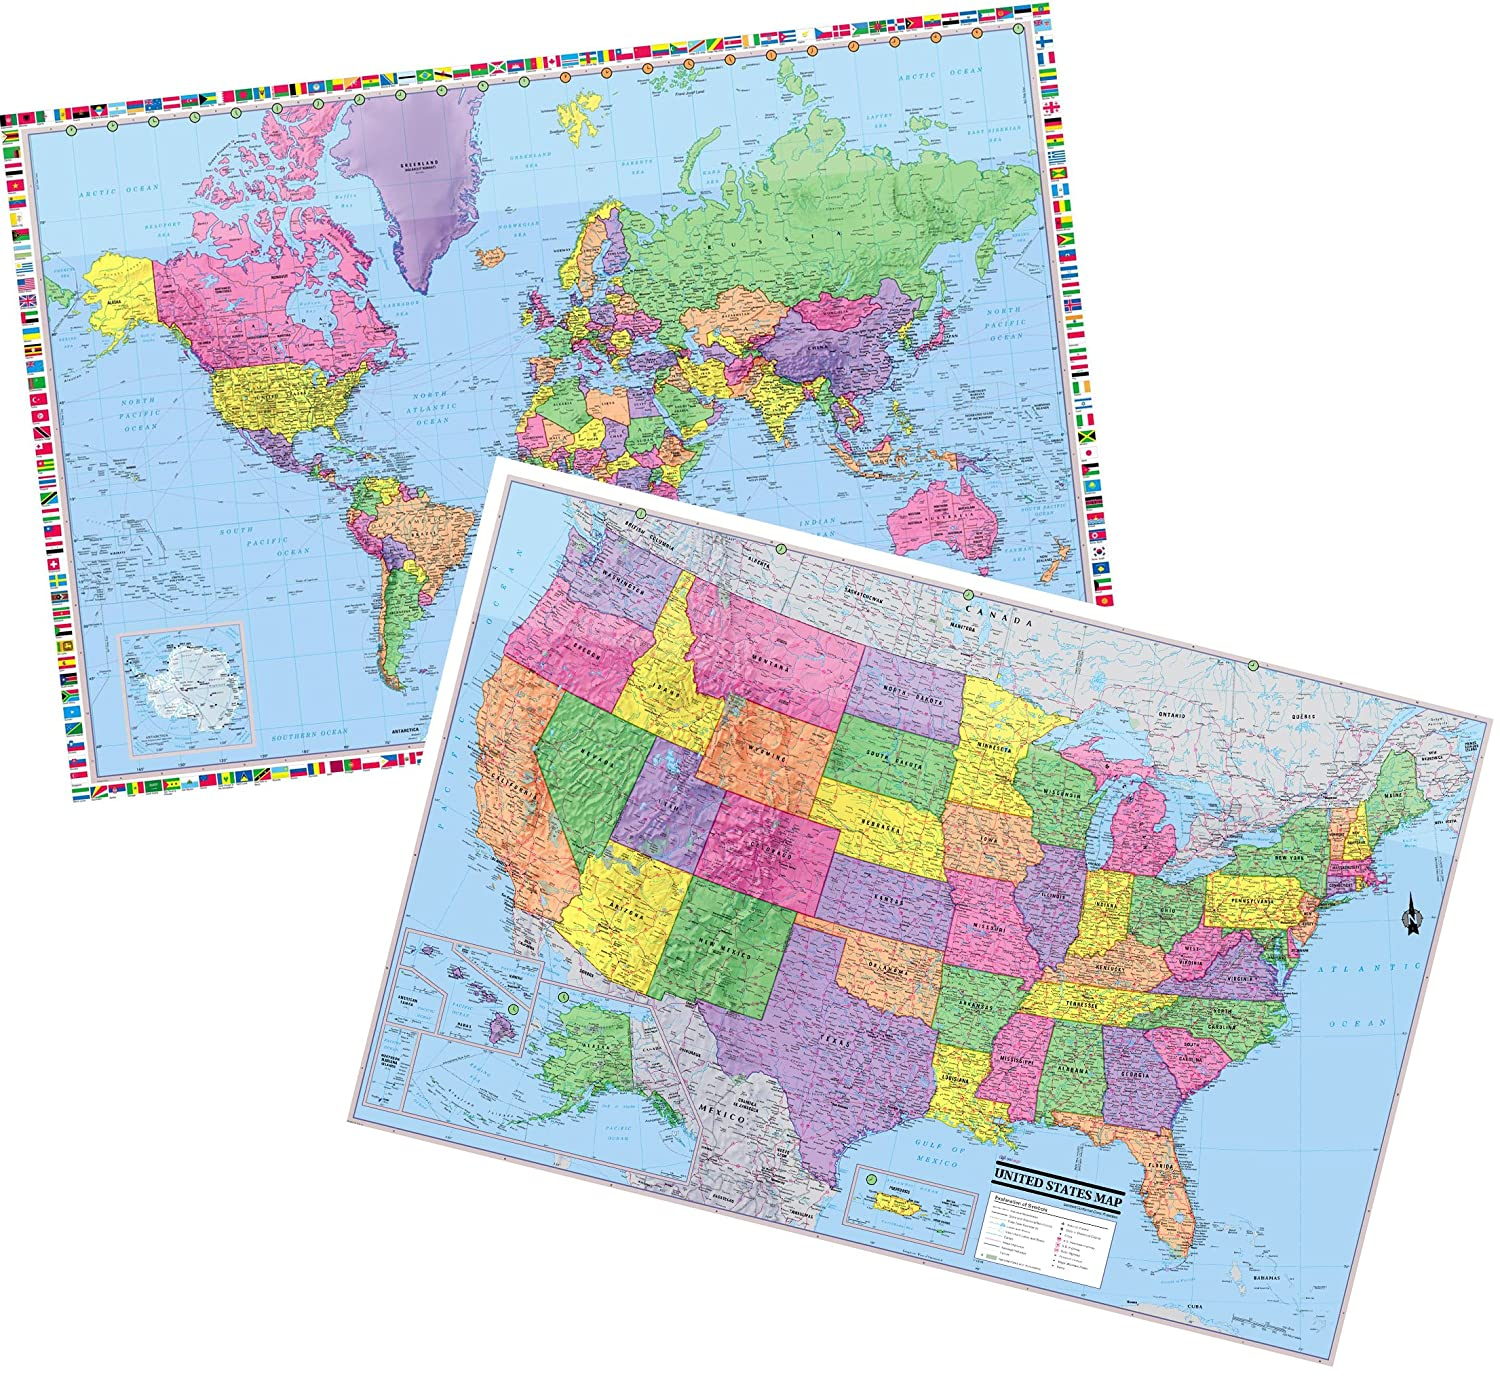 Amazon.com : Cool Owl Maps United States & World 3D Wall Maps - 36 ...